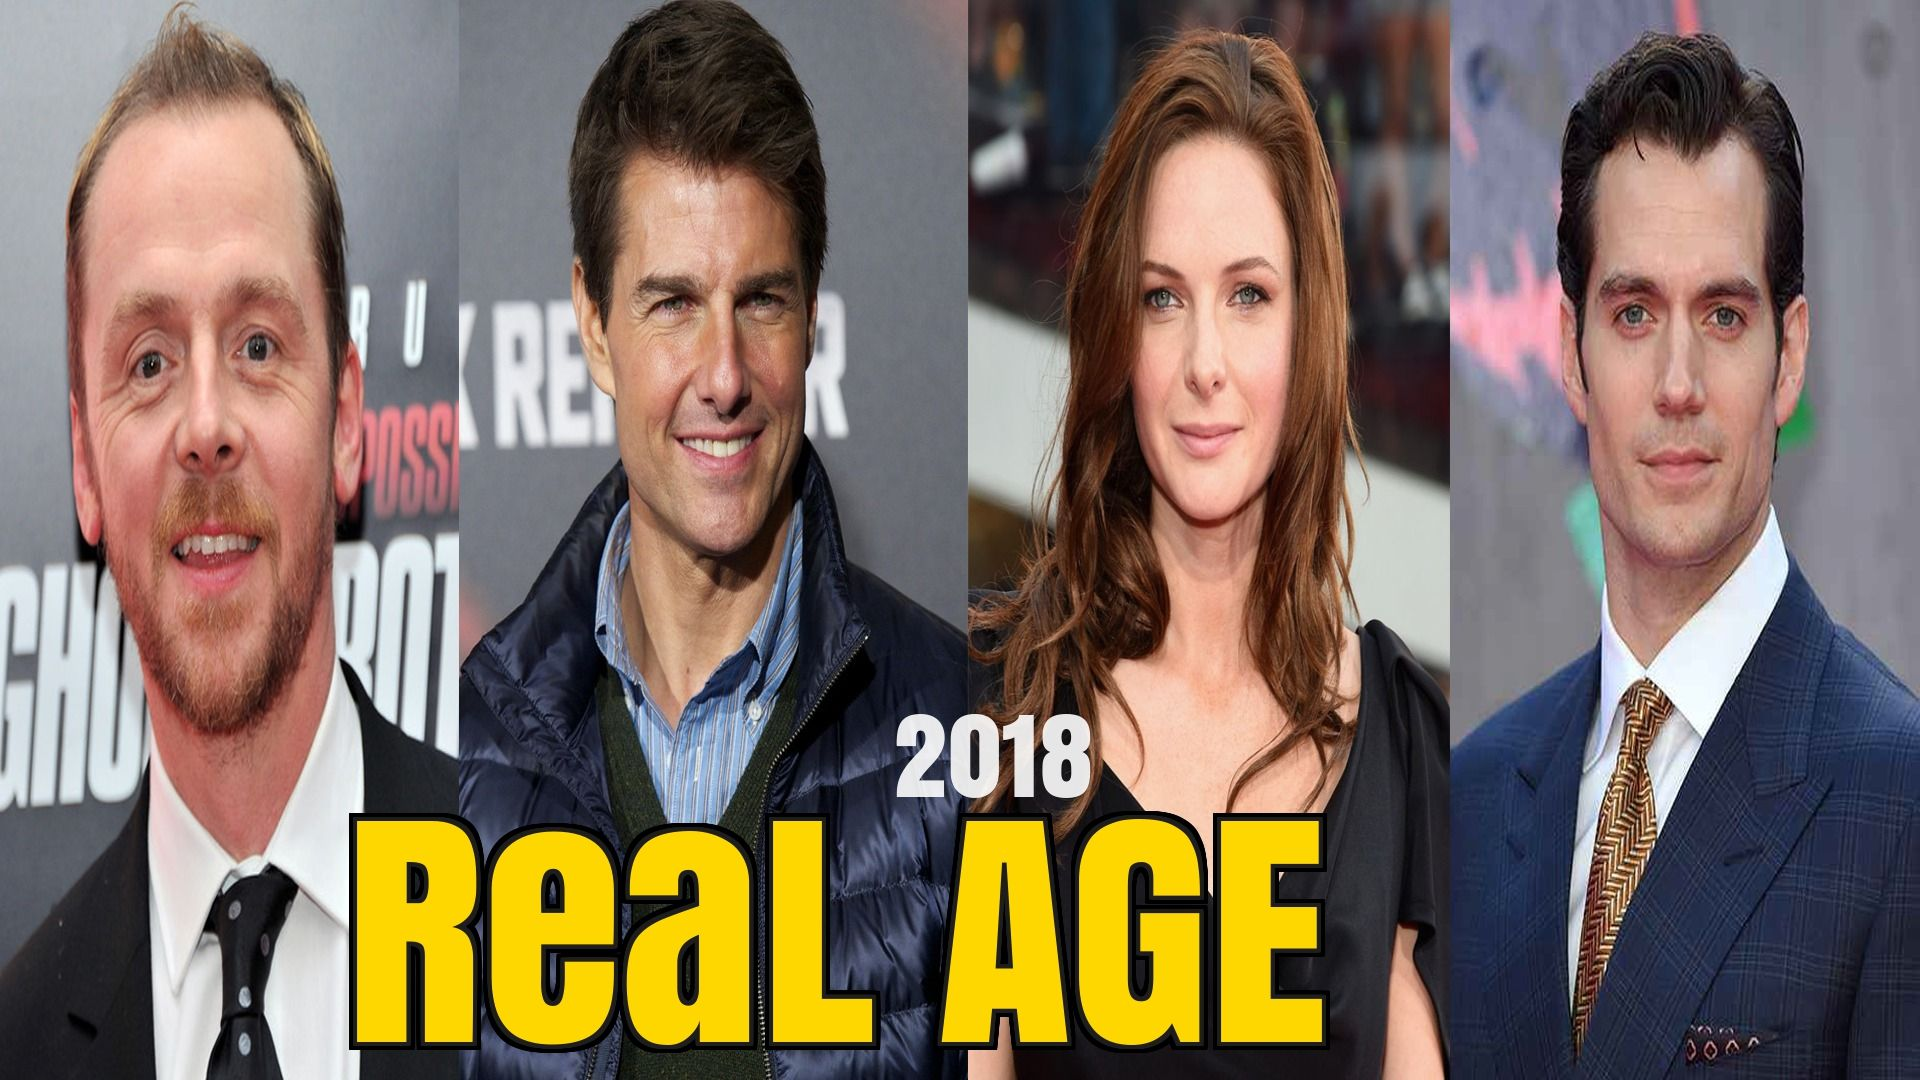 Mission Impossible Fallout Cast Real Age 2018 Tom Cruise Mission Impossible Fallout Tom Cruise Mission Impossible